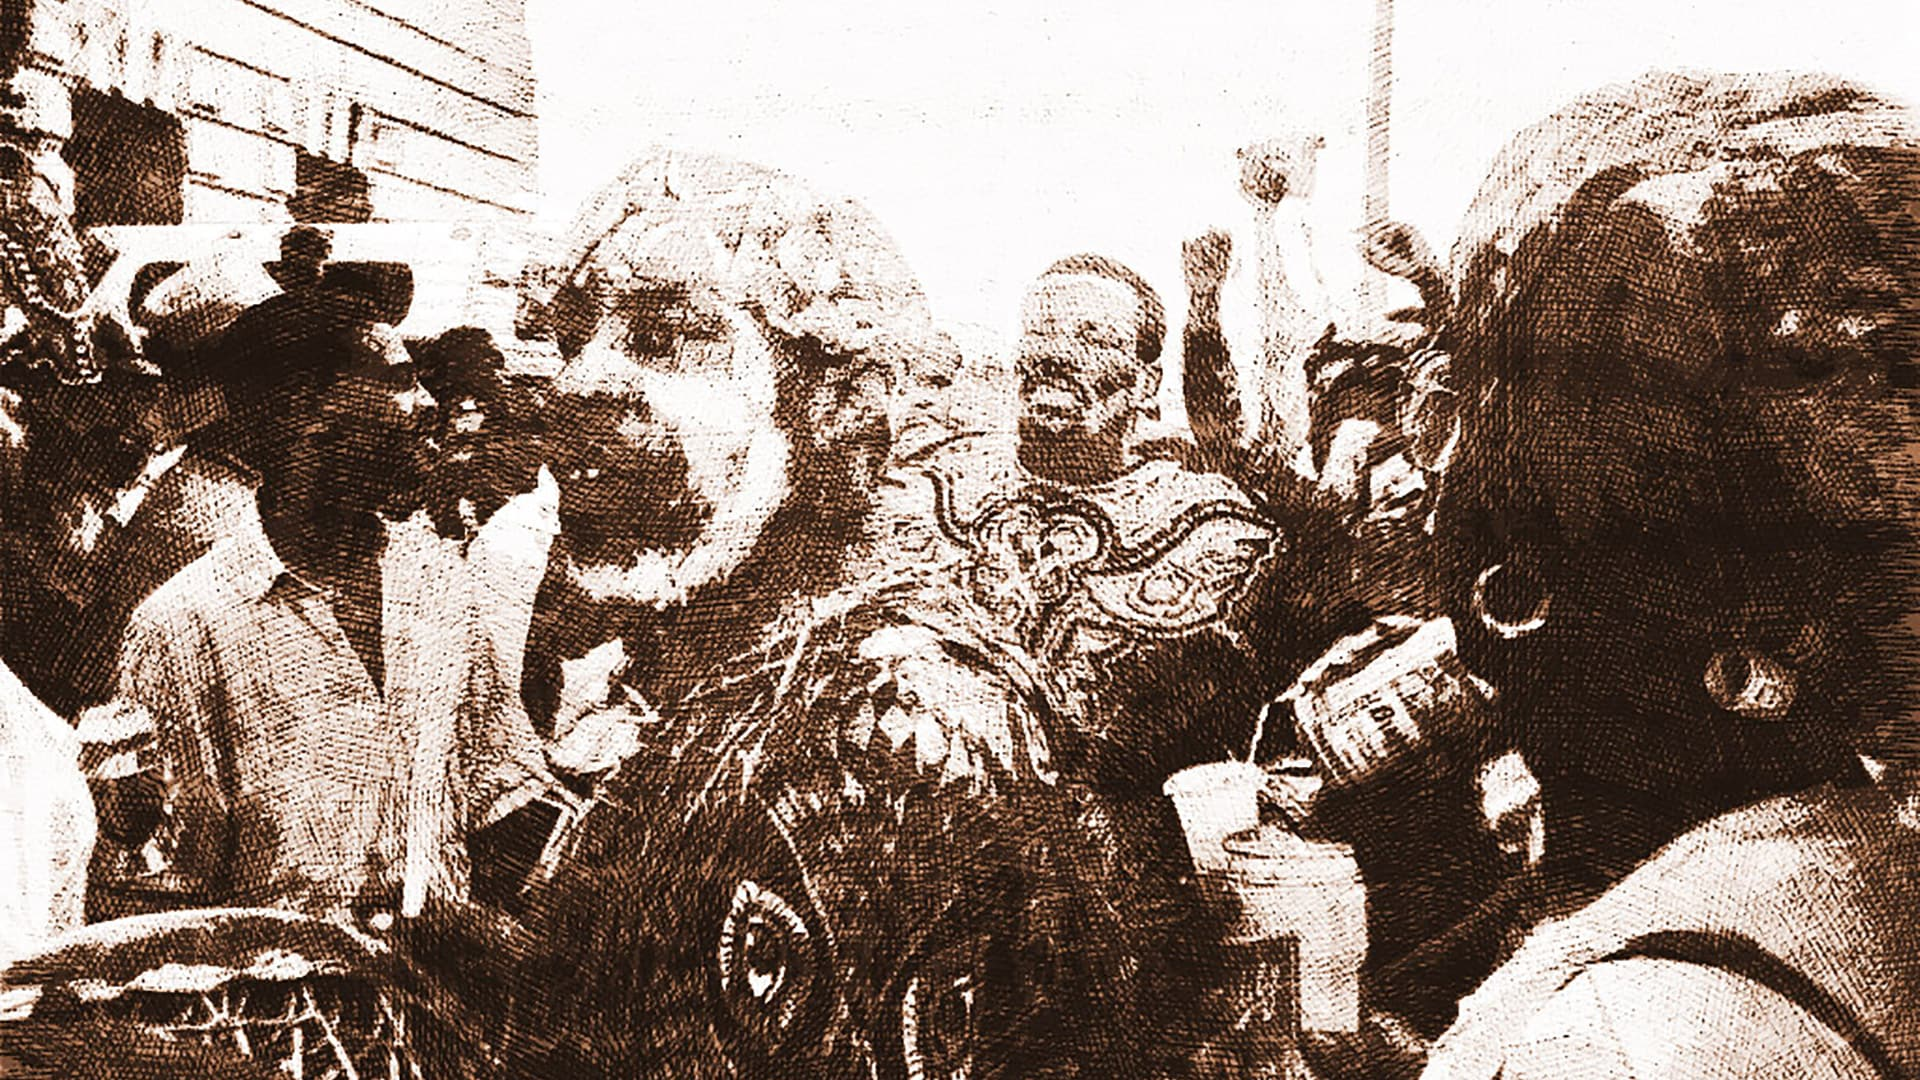 Mardi Gras celebration at Congo Square beside the Municipal Auditorium, 1990s. Image credit: Infrognation